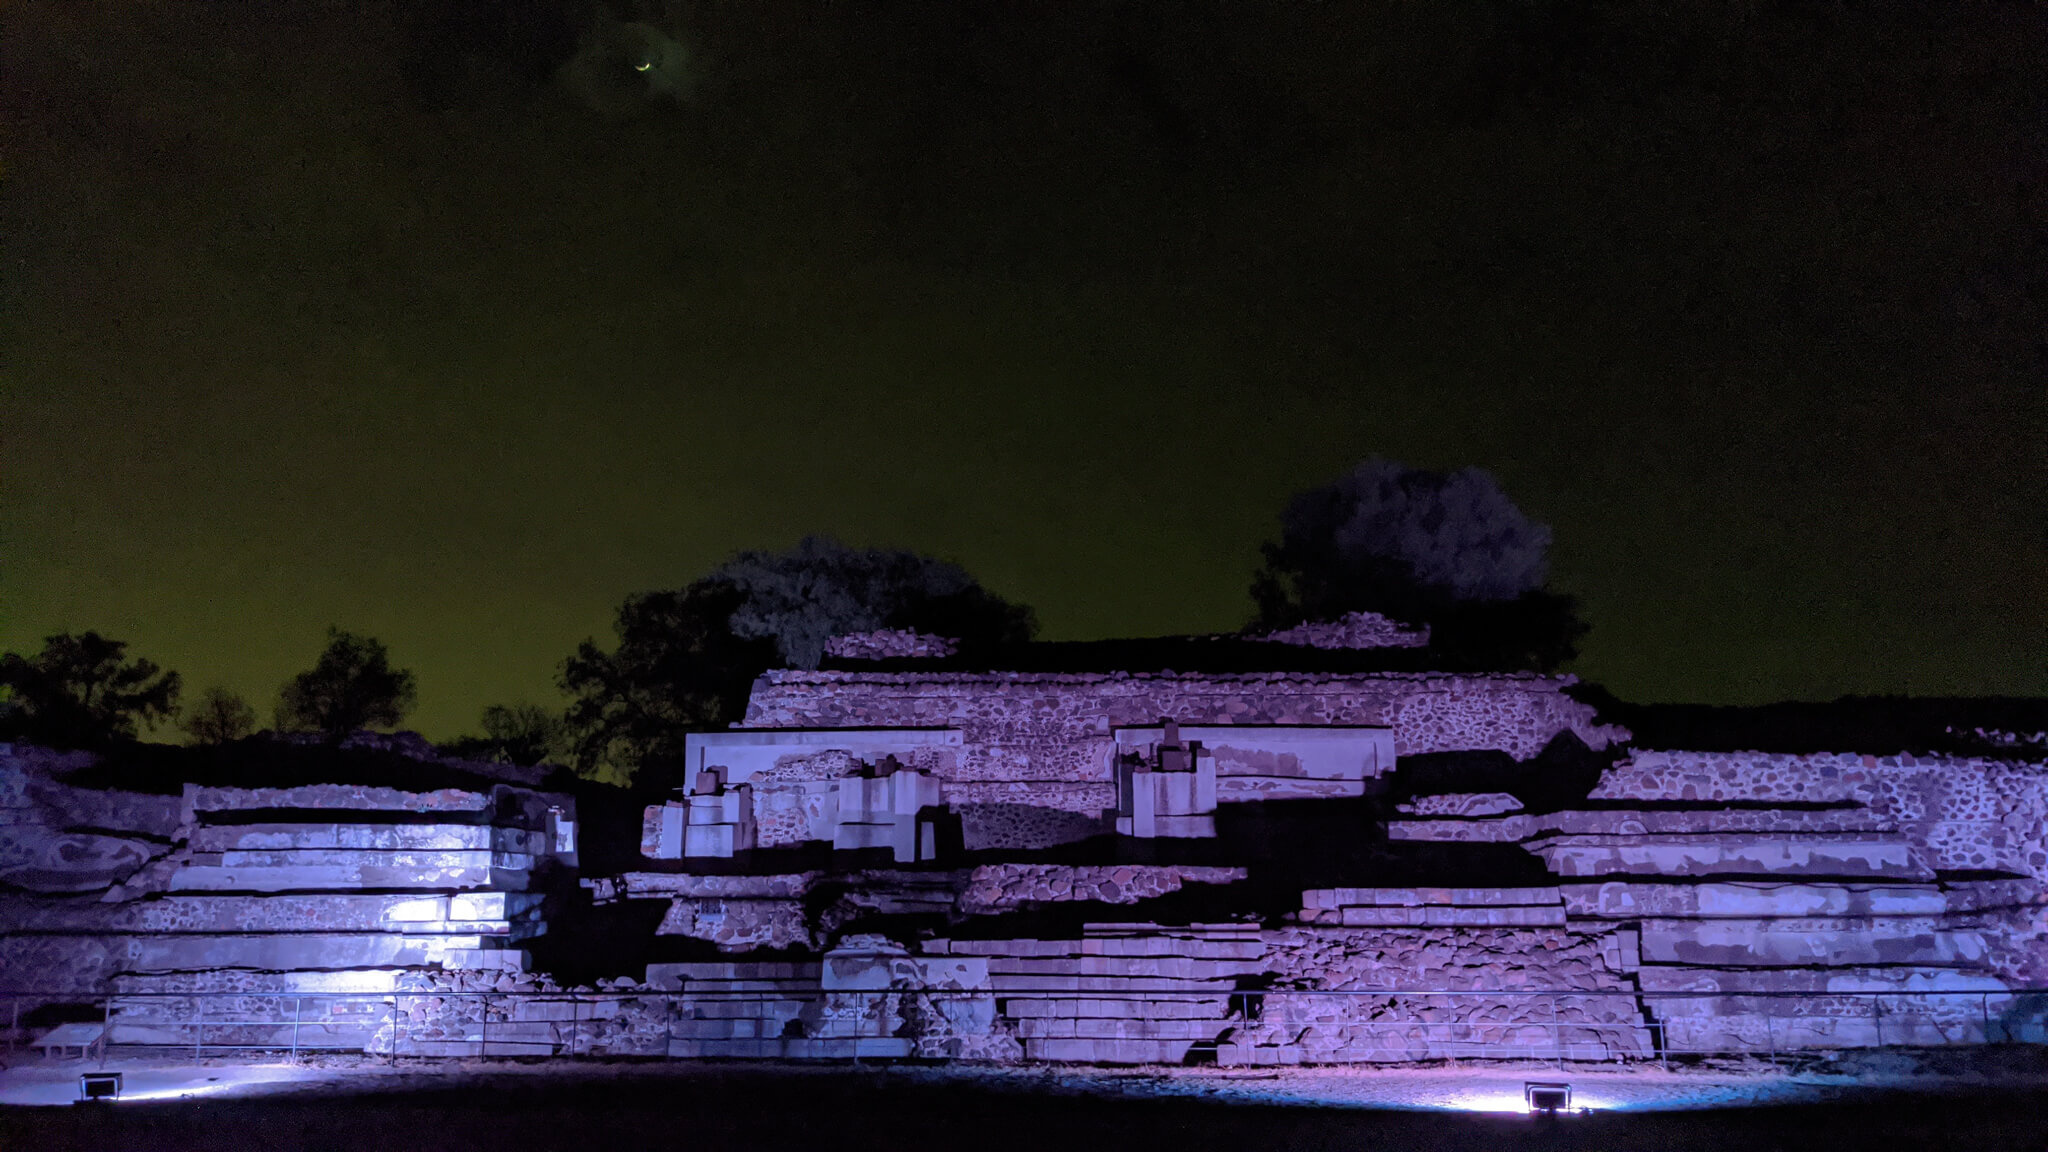 Seed vault lit at night Teotihuacan night experience